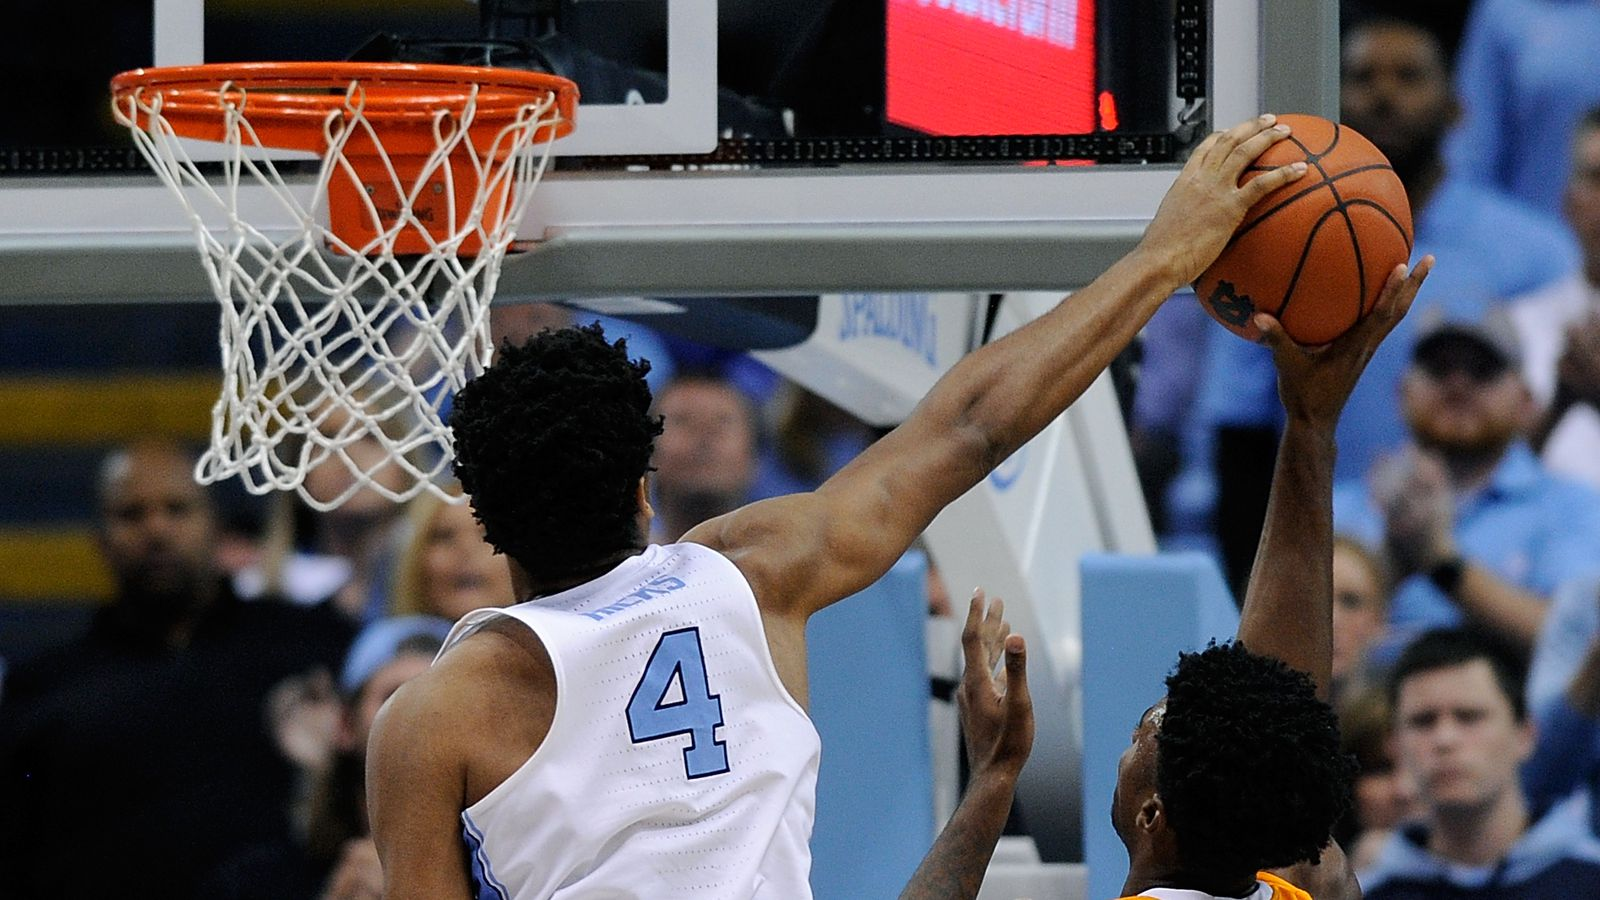 ACC Roundup - UNC Escapes..Tennessee? - Duke Basketball Report